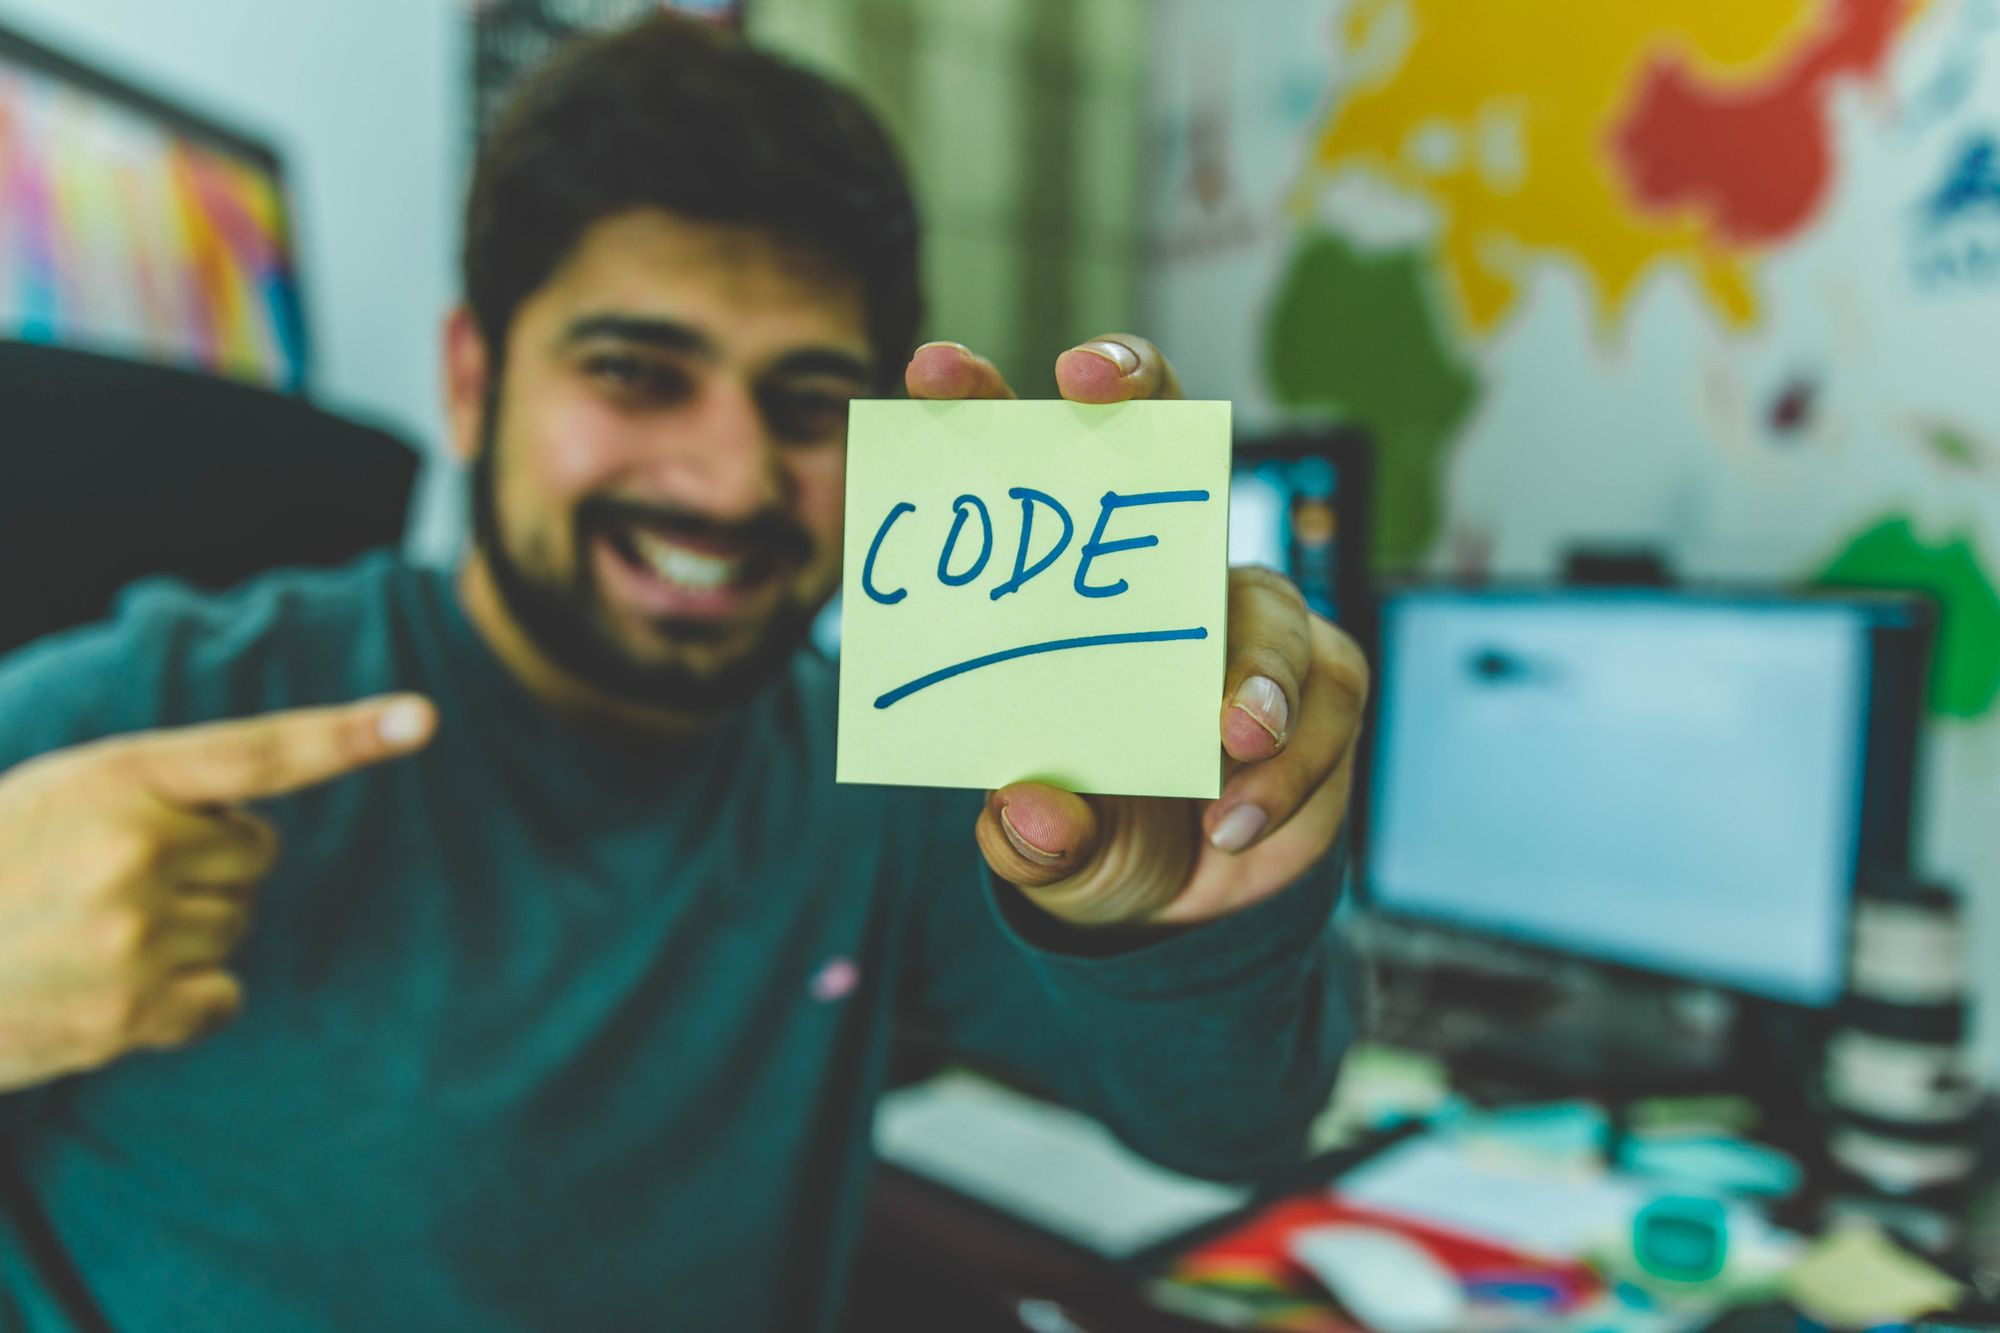 Man showing note with the word written code